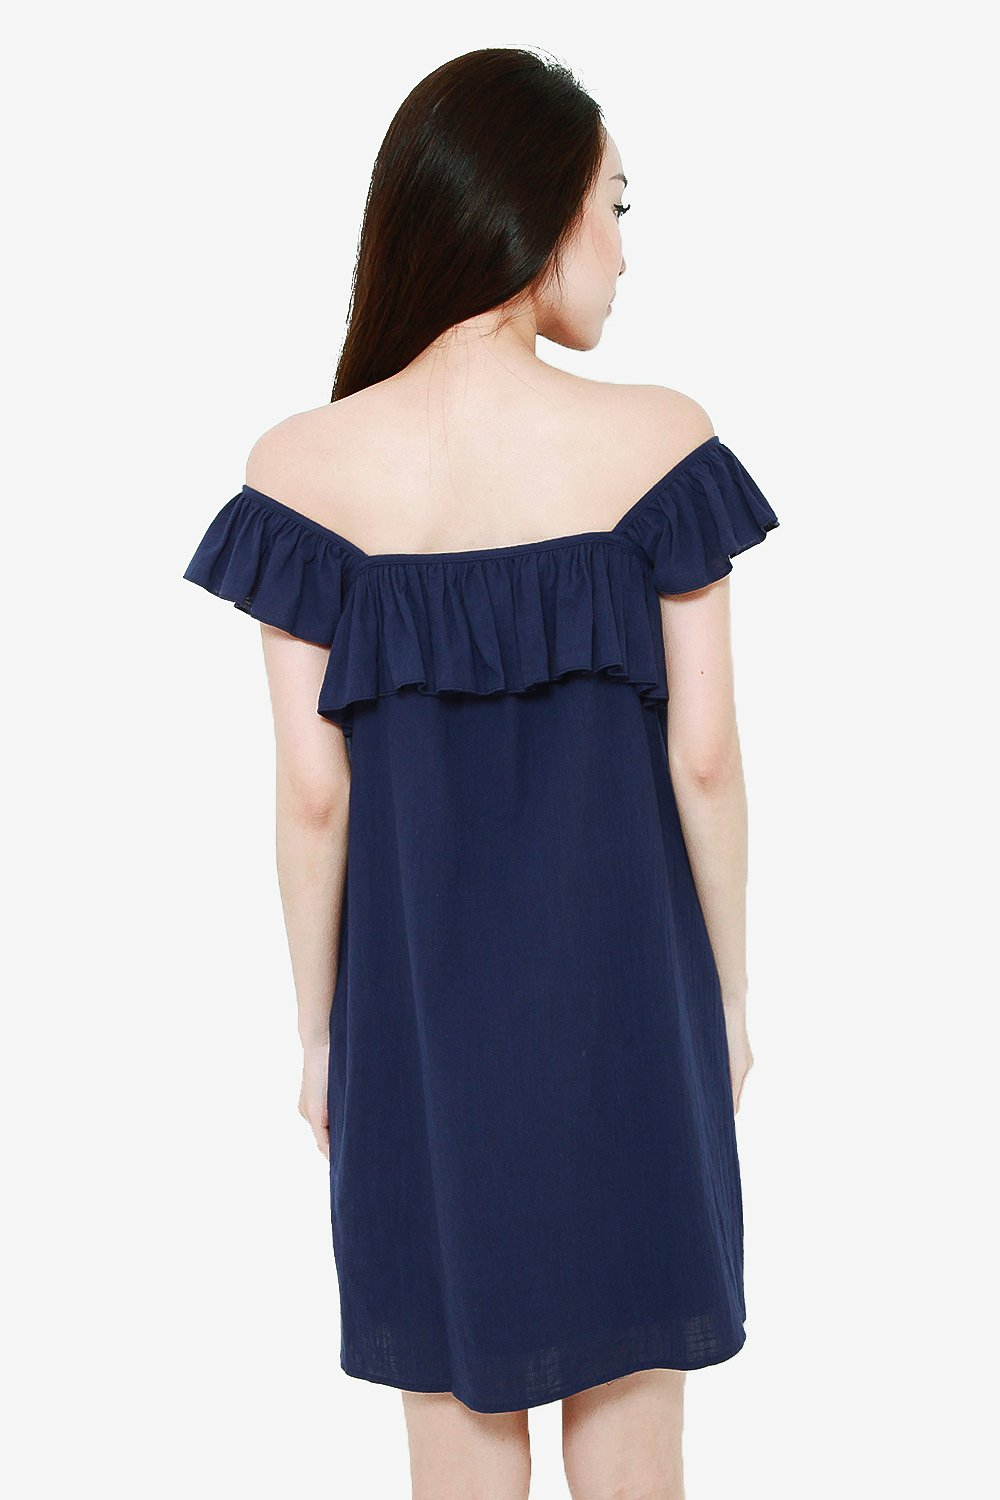 KATE NAVY FLUTTER SUNDRESS